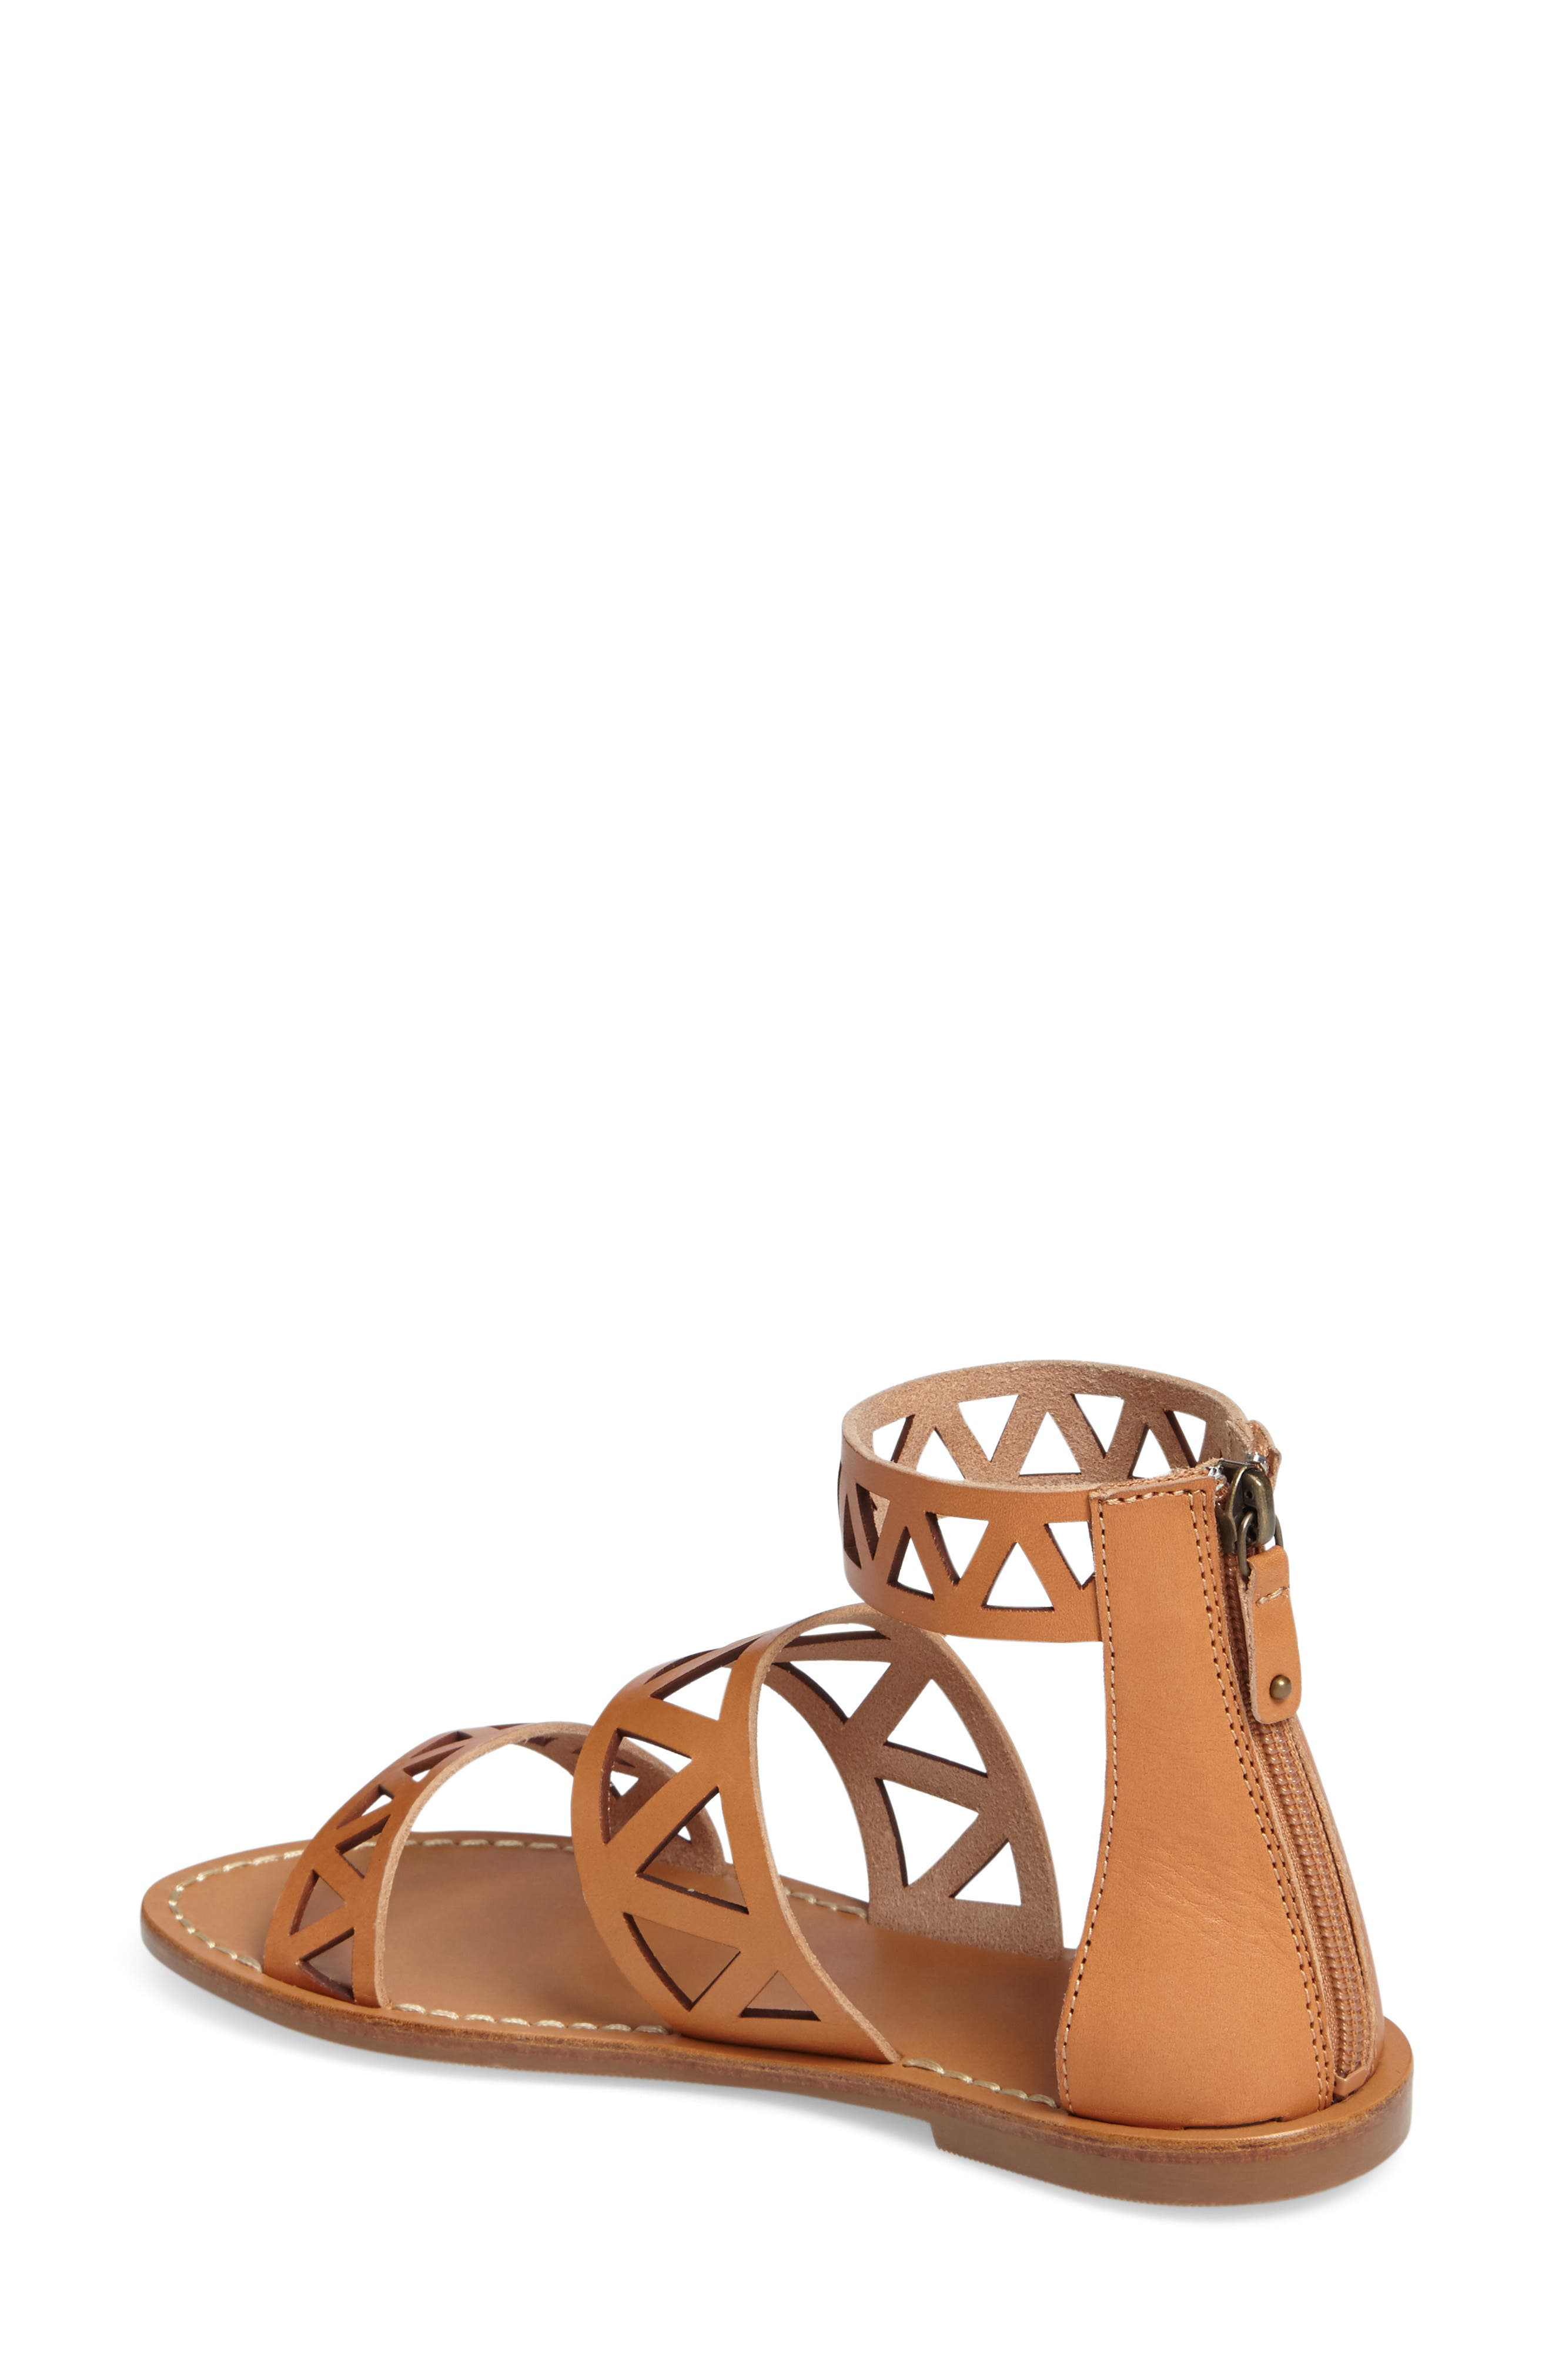 Ankle Cuff Sandal,                             Alternate thumbnail 2, color,                             200